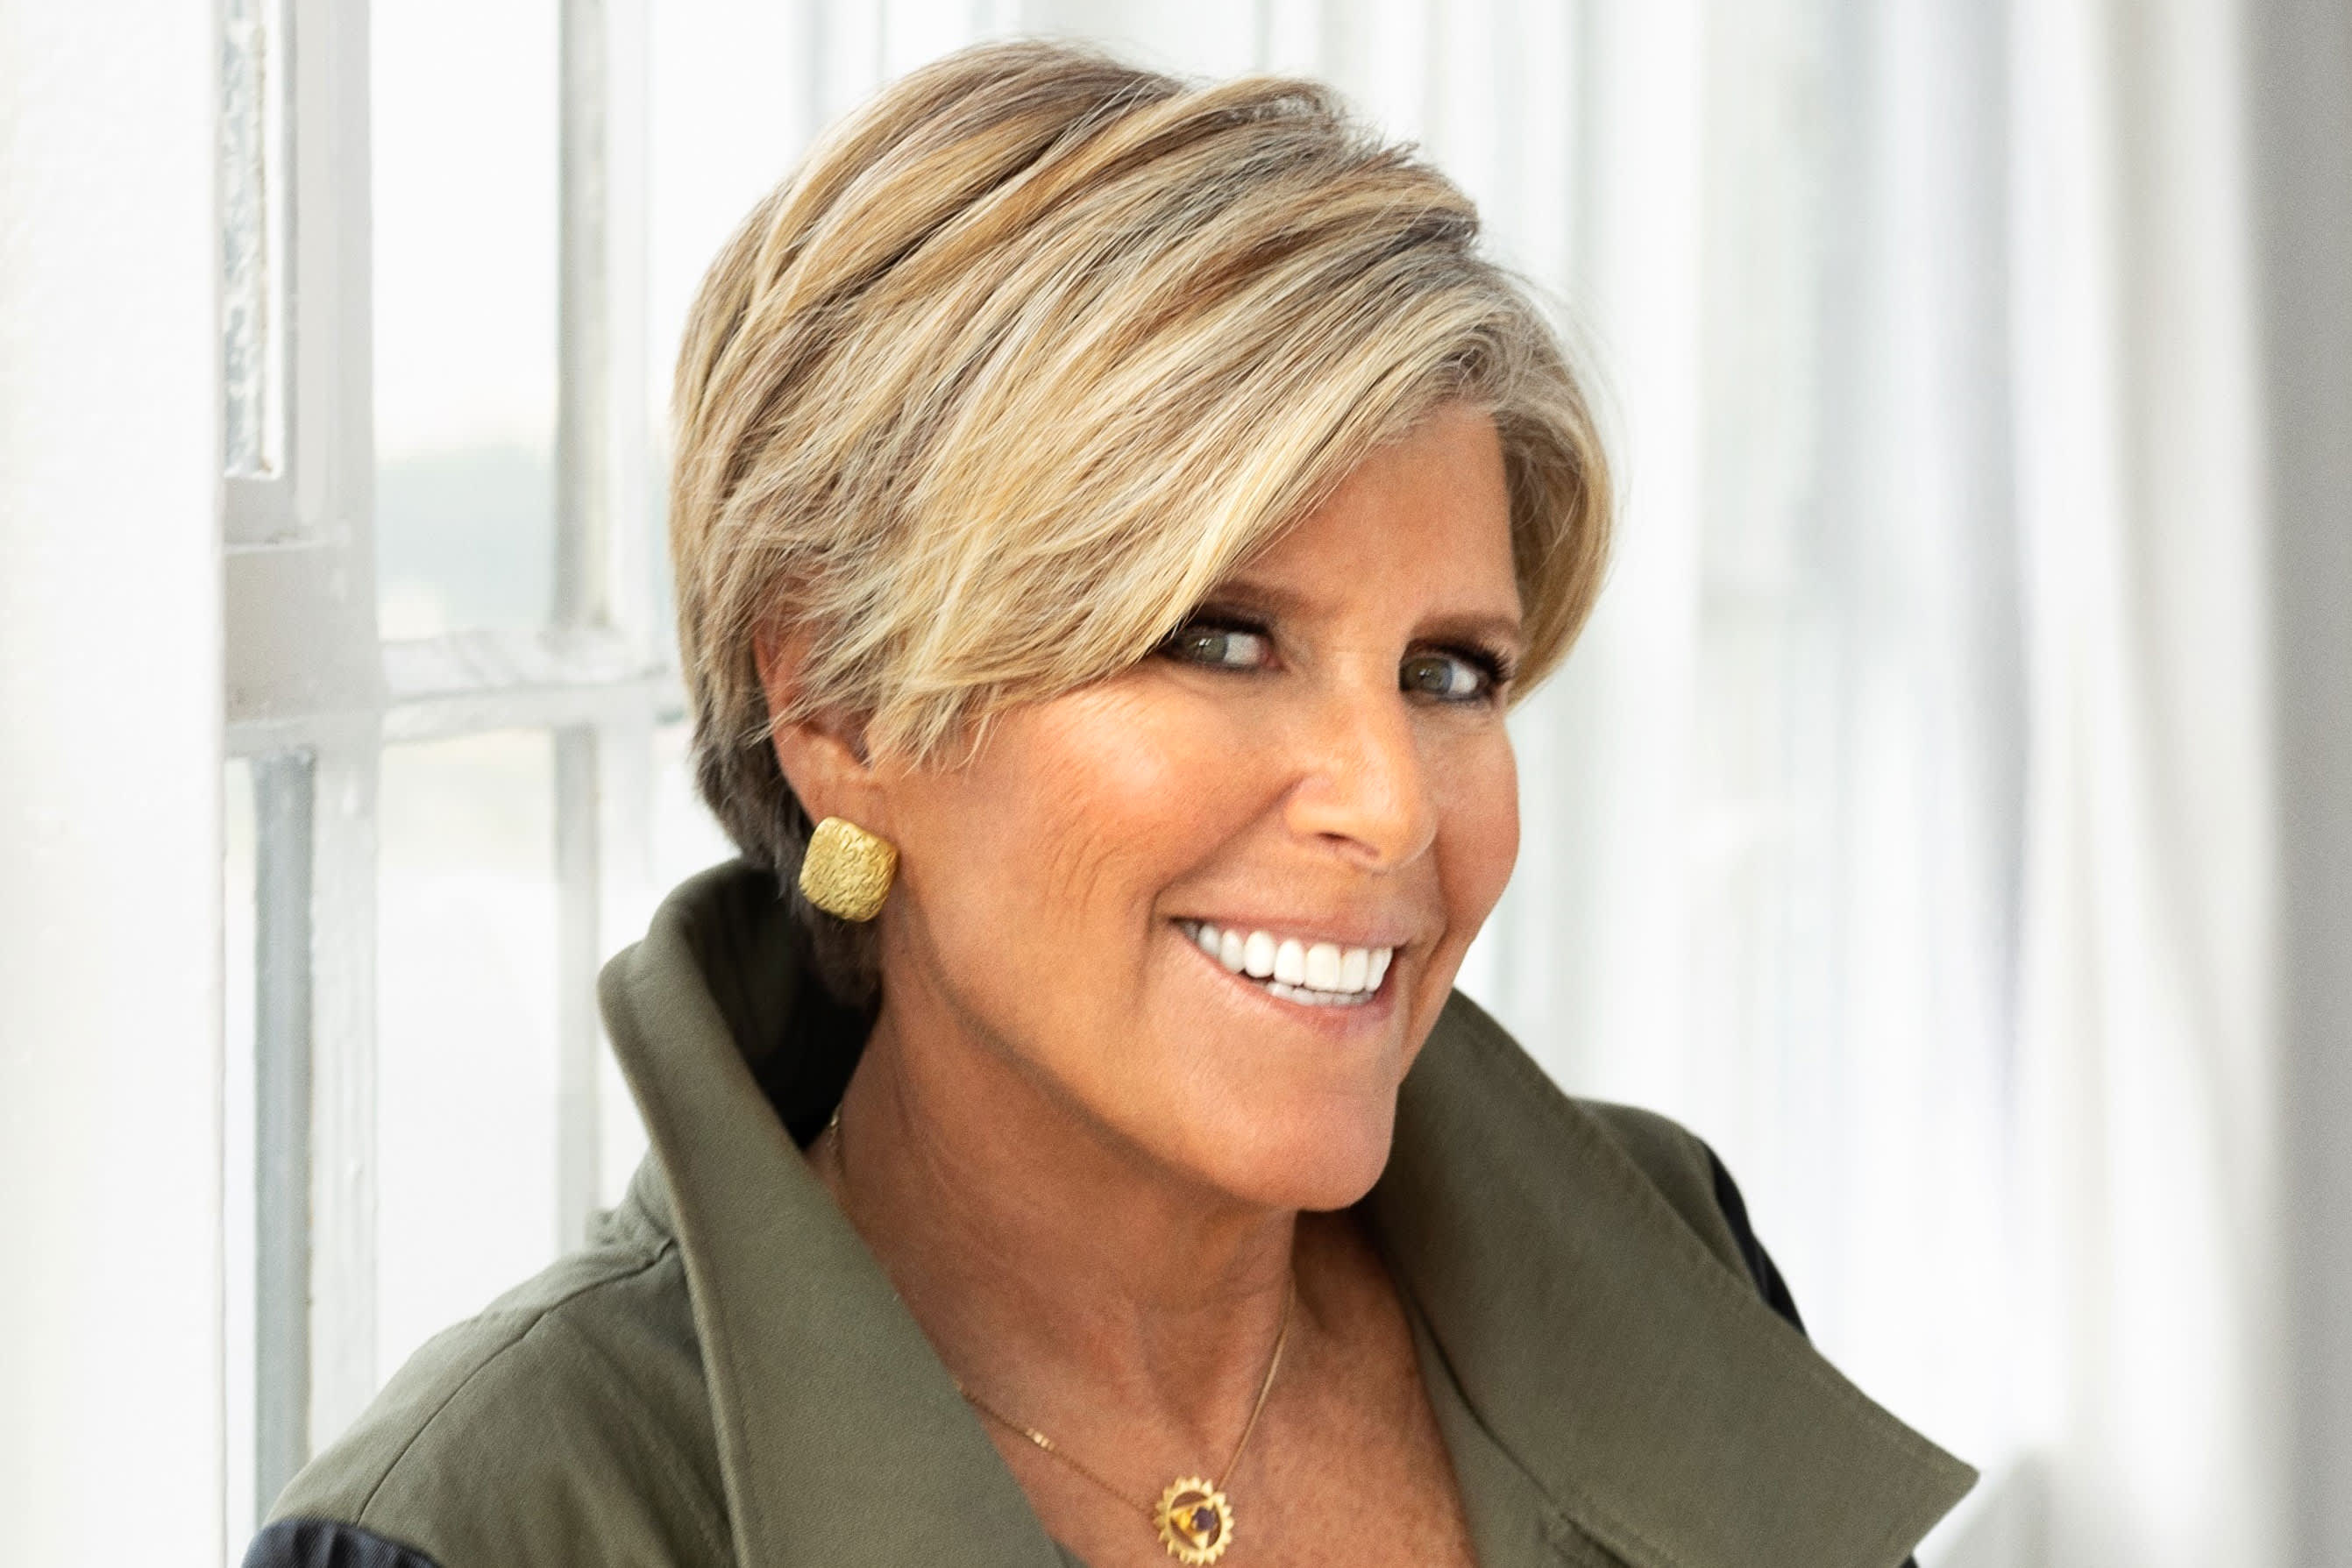 Suze Orman: 'It's not about what you earn' — here's what to focus on in your 20s to build wealth